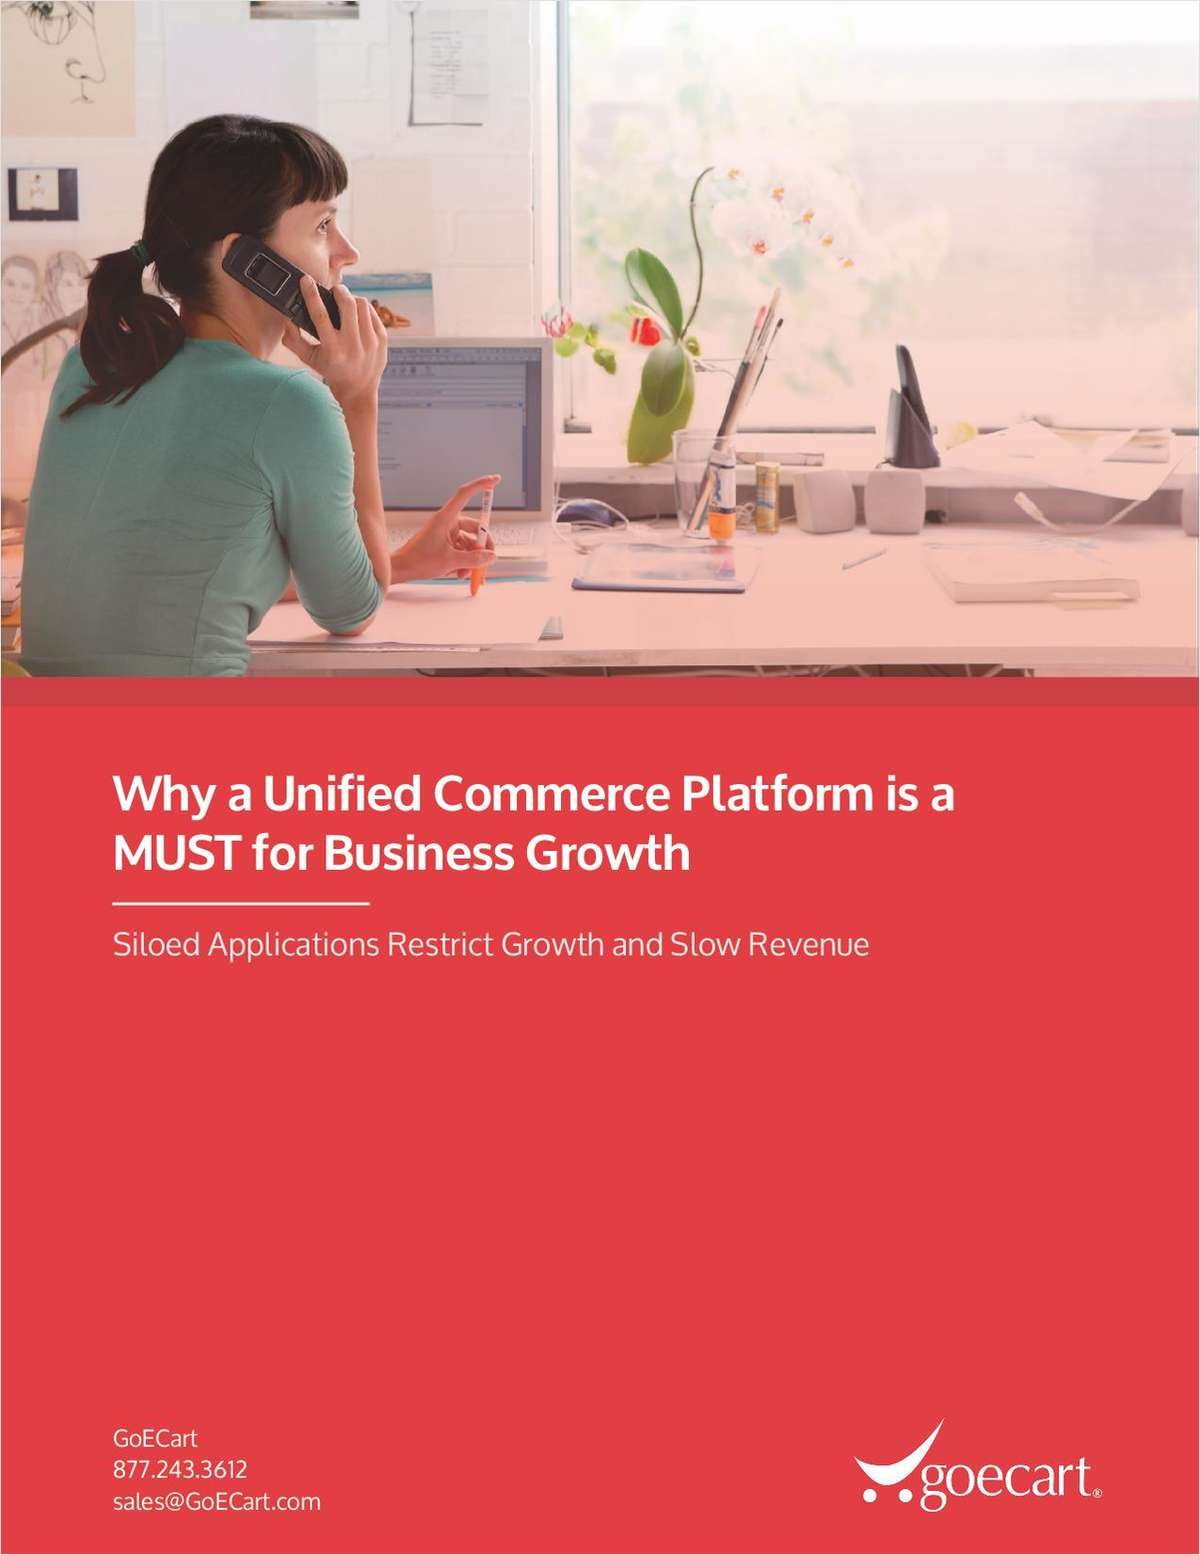 Why a Unified Commerce Platform is a MUST for Business Growth